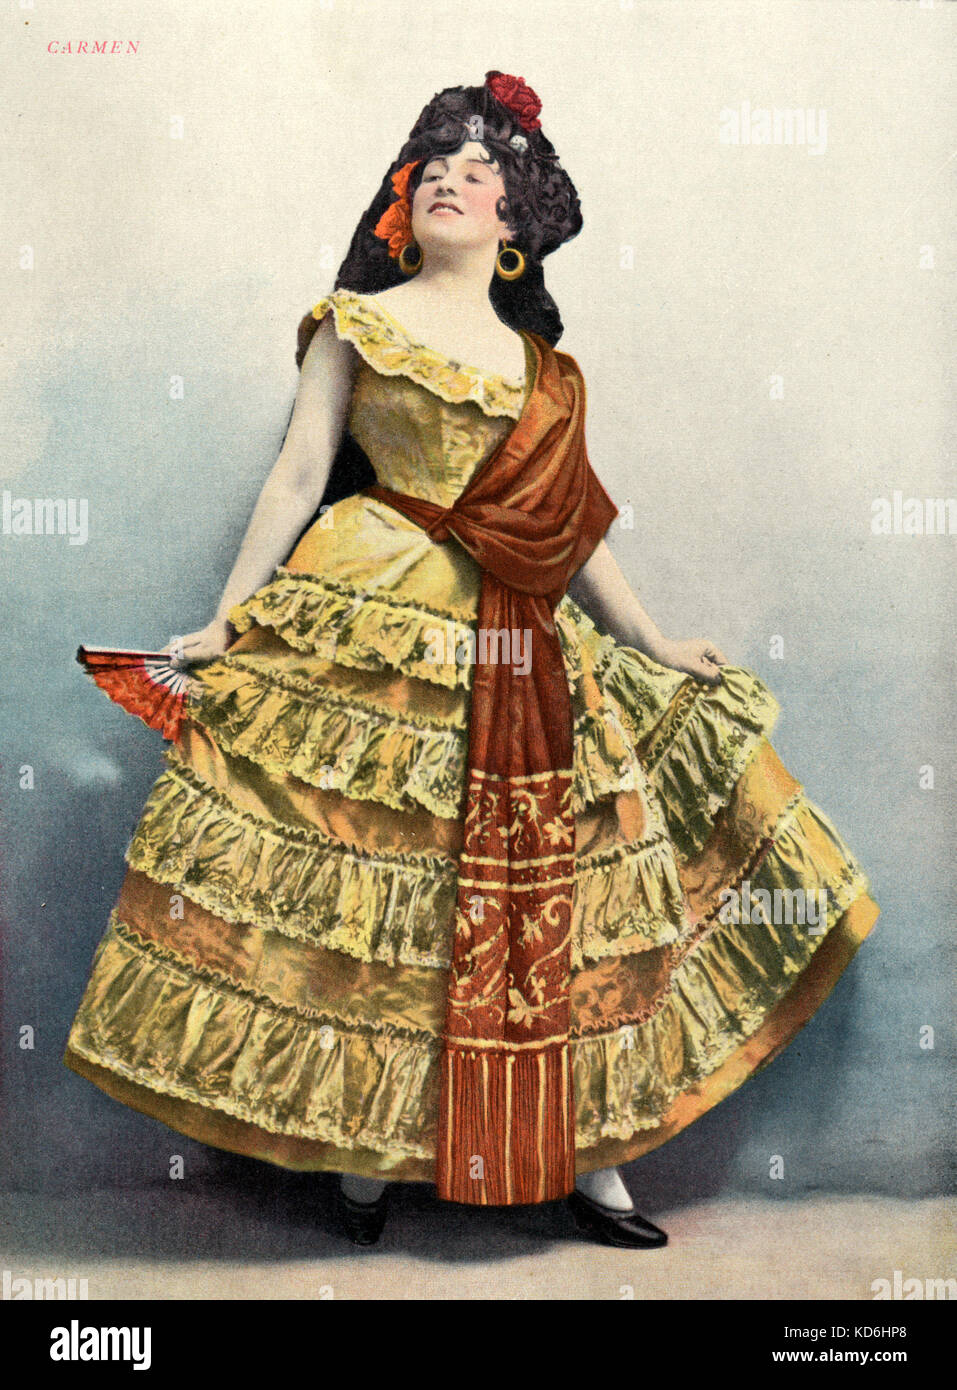 Georgette LeBlanc as Carmen in Bizet's opera, 'Carmen', in 1899. From front cover of Le Théatre,   1899. Stock Photo